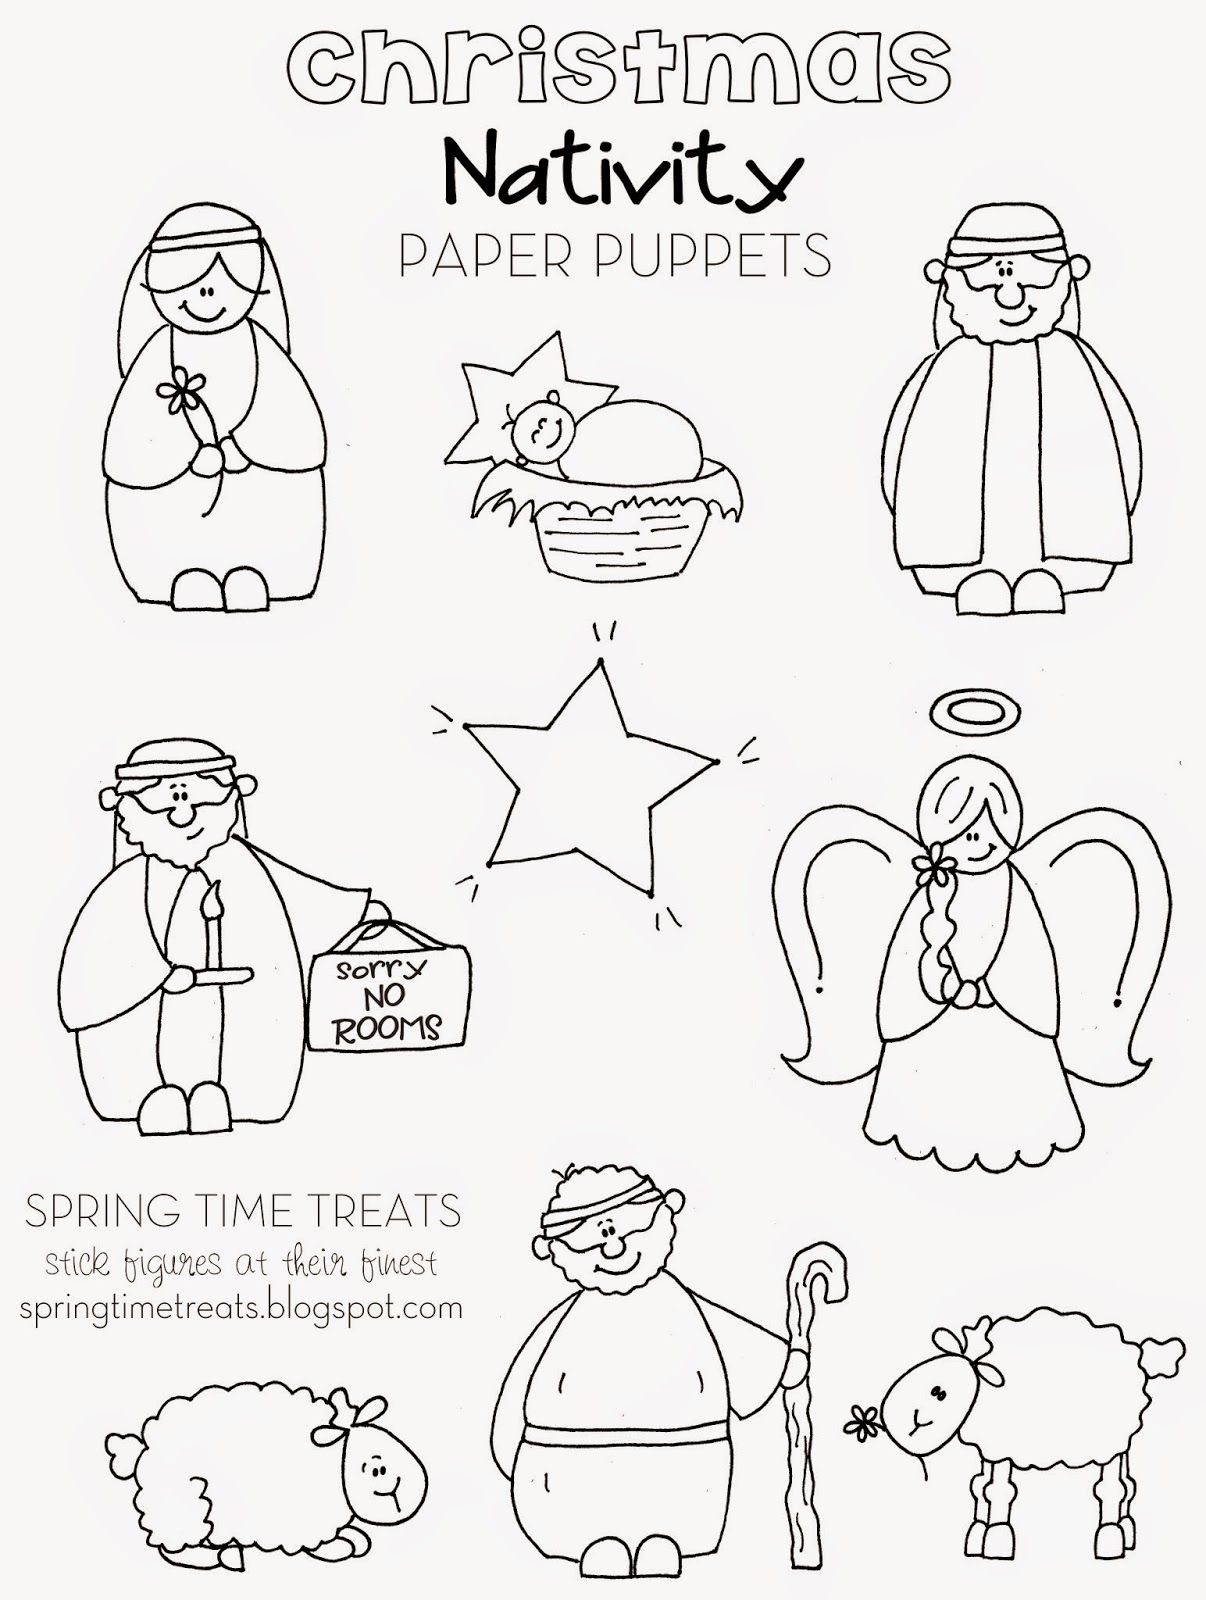 Nativity Paper Puppets